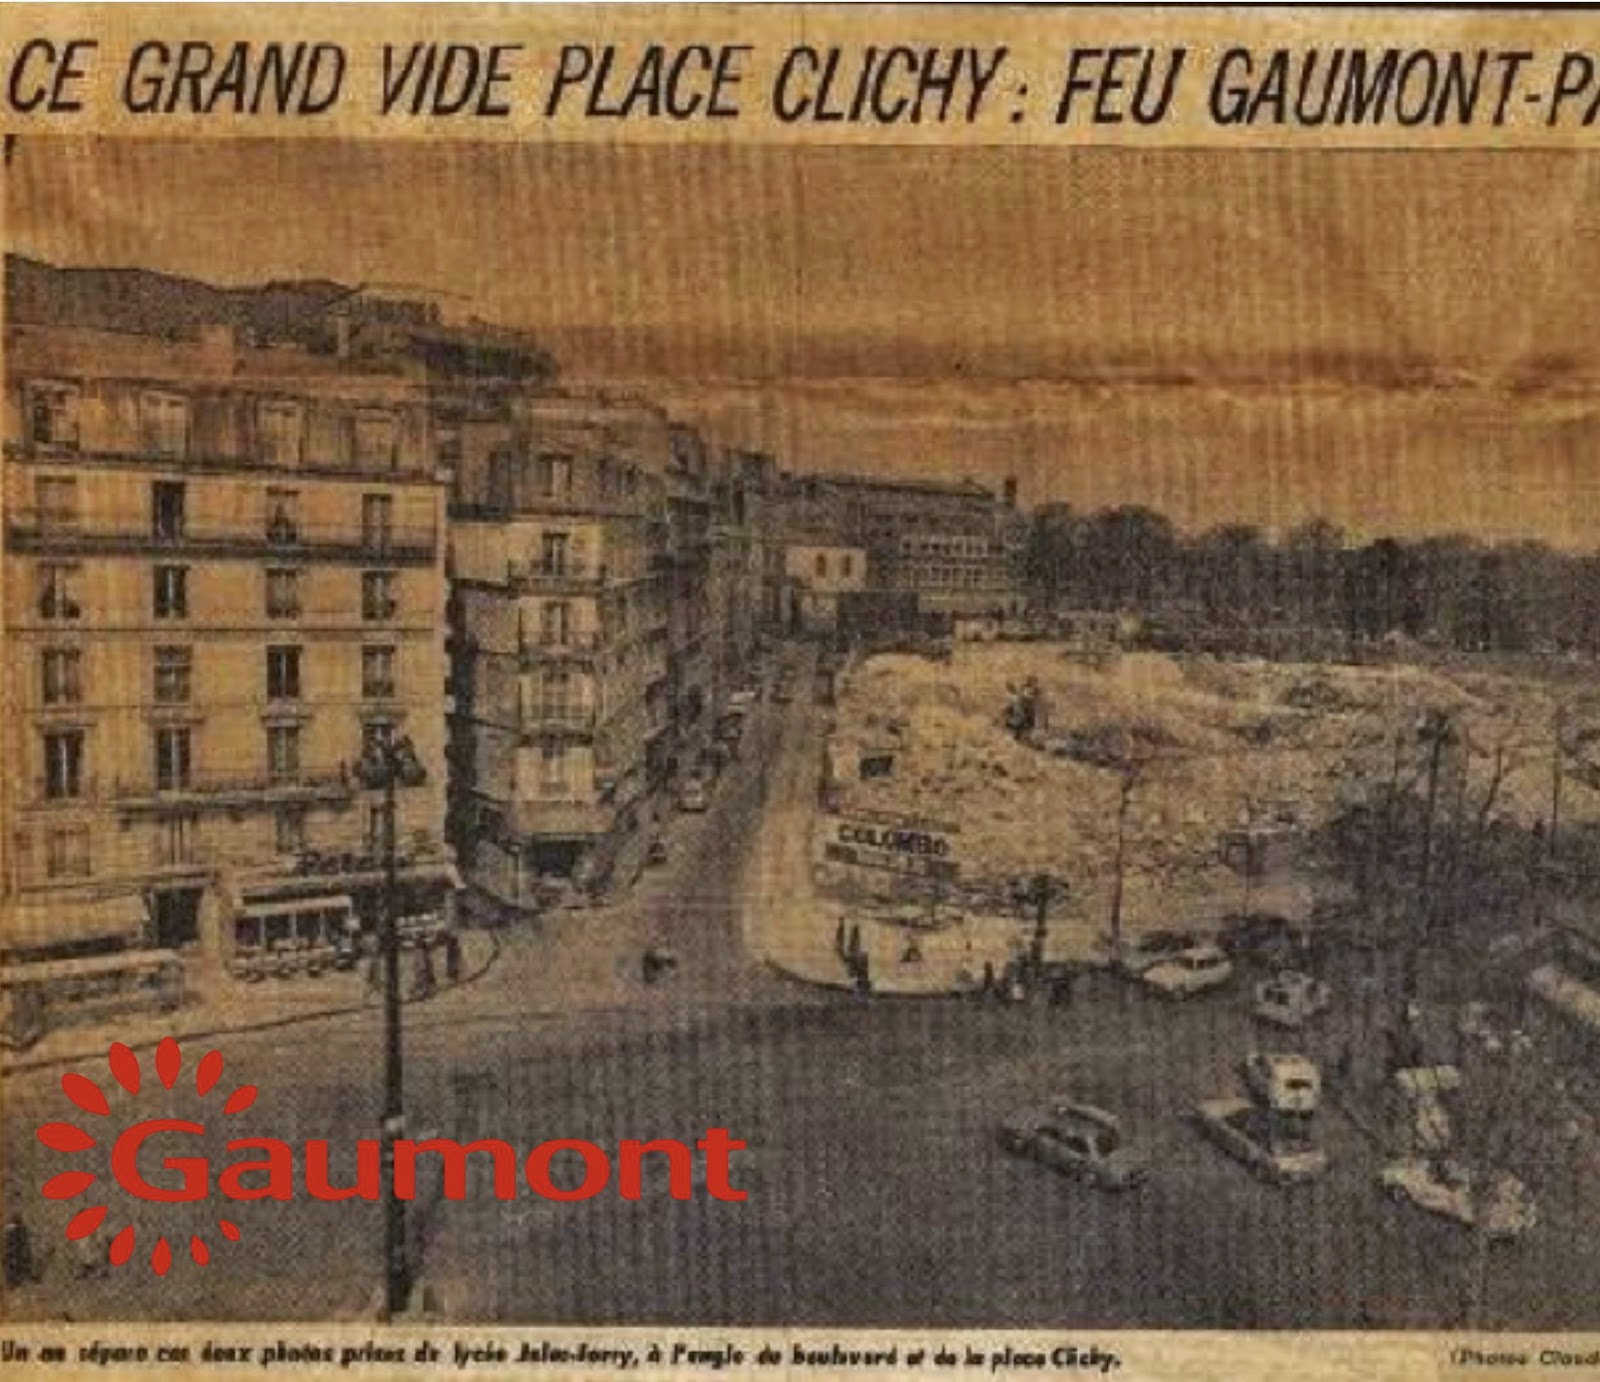 Destruction du Gaumont Palace pierre-philippe-gaumont.blogspot.fr